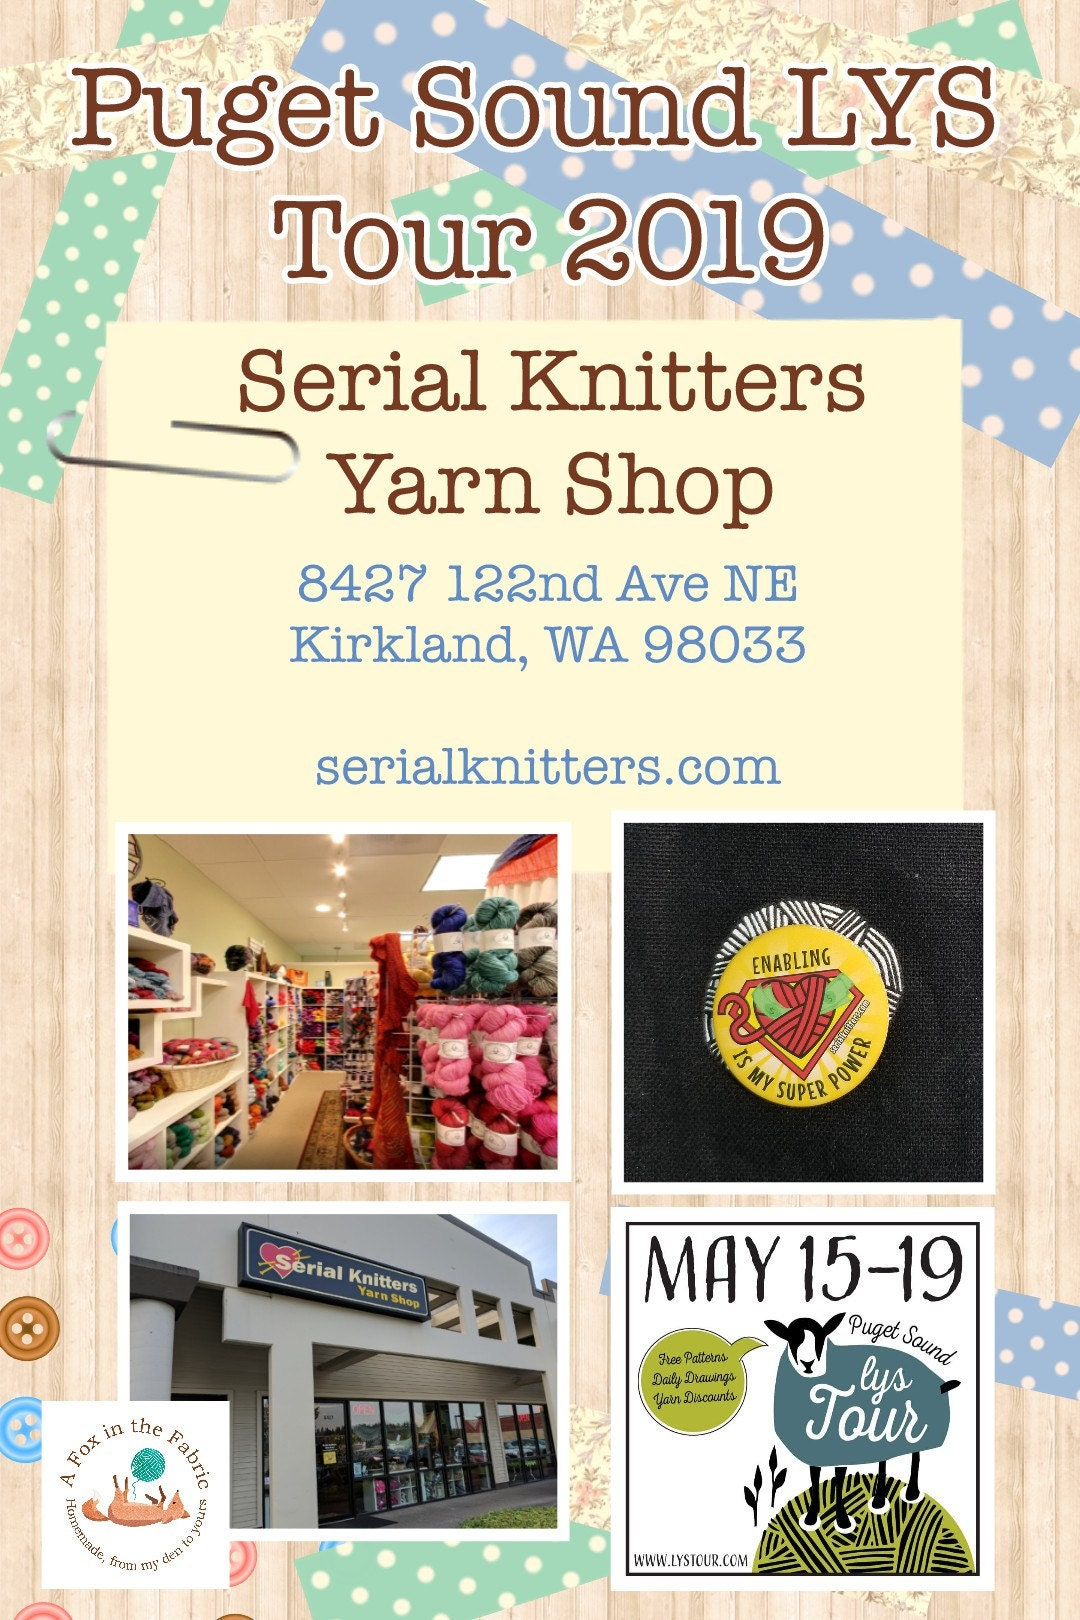 Puget Sound LYS Tour 2019 Serial Knitters Yarn Shop